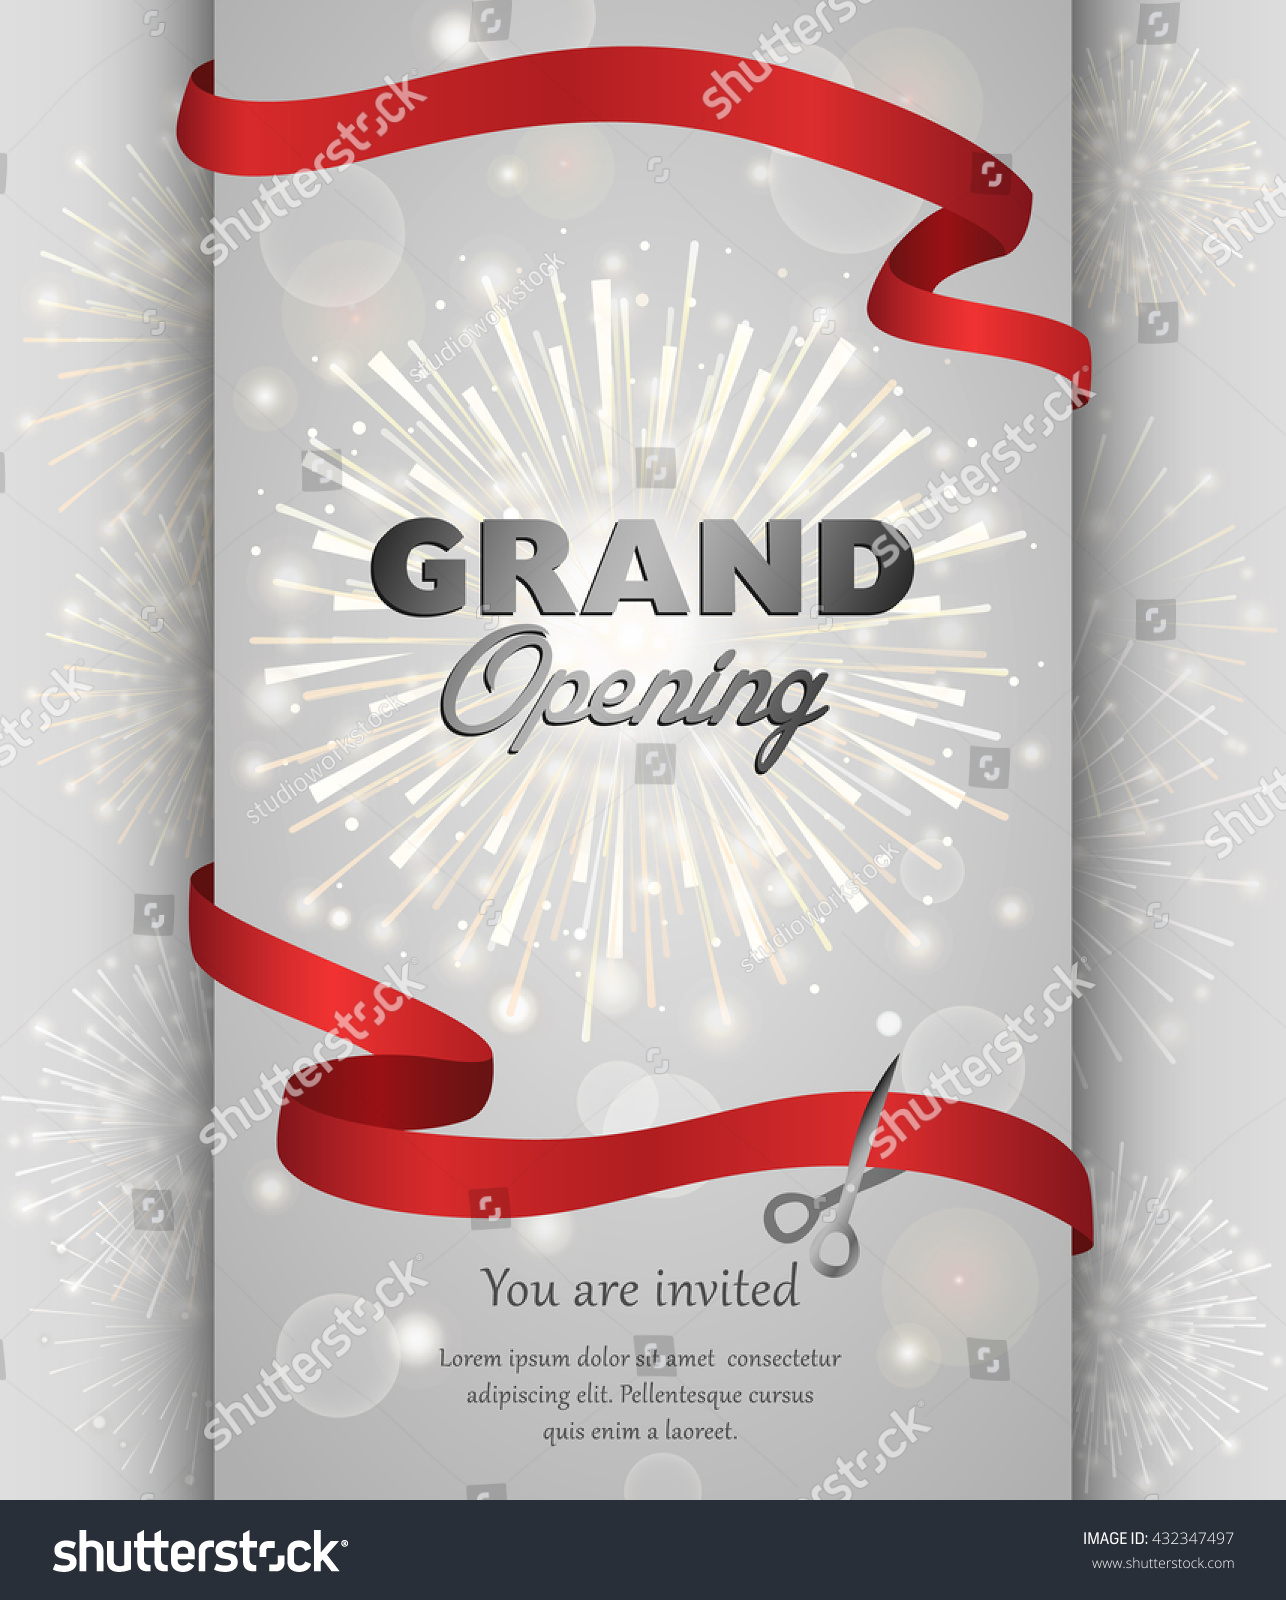 Grand opening celebration banner design vector illustration Ribbon cutting ceremony